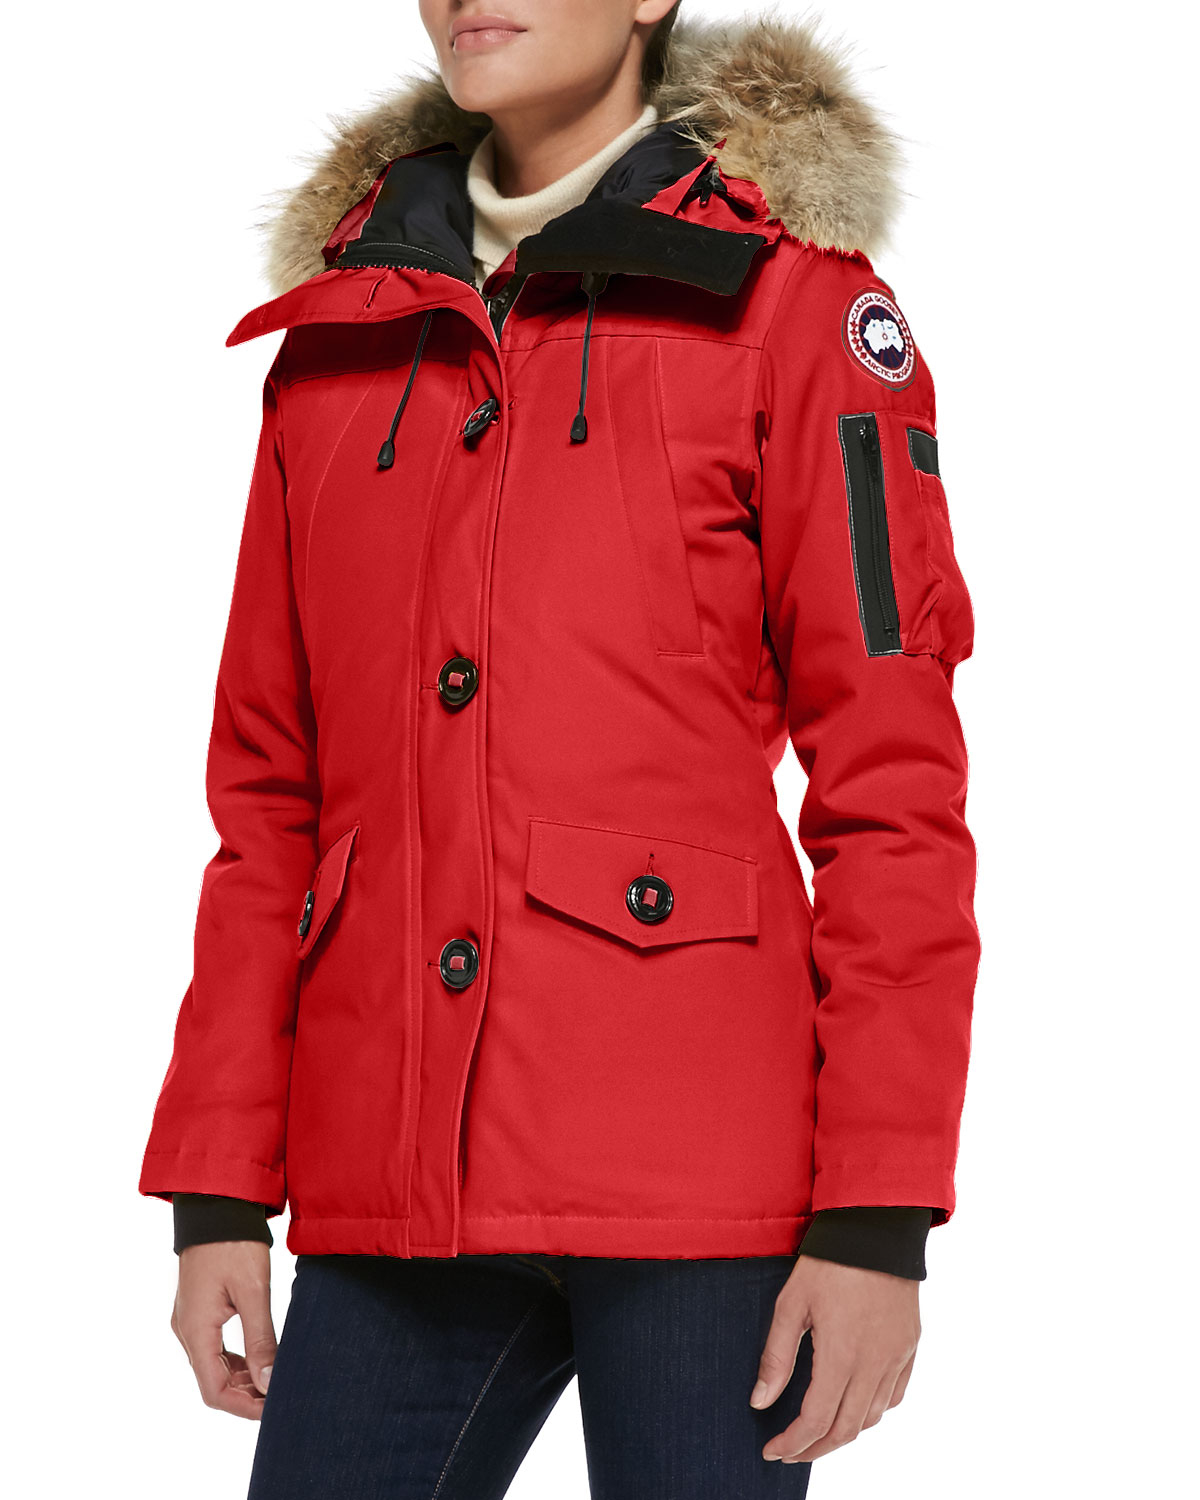 To acquire Goose Canada clothing pictures pictures trends